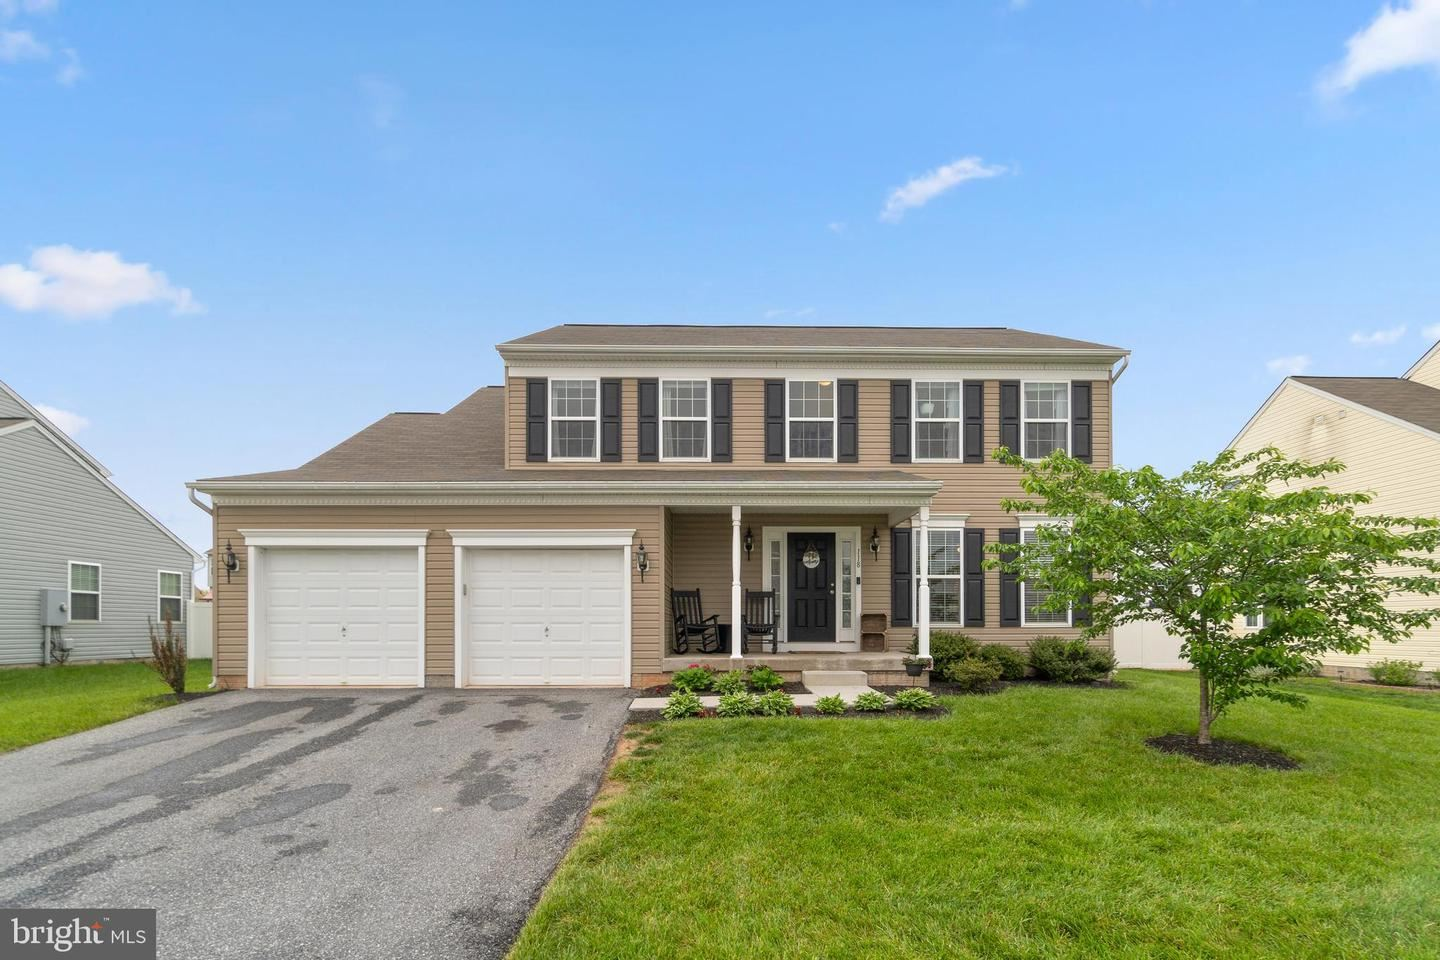 118 WATER RUN ST, Taneytown, MD 21787 - MLS#: MDCR204160